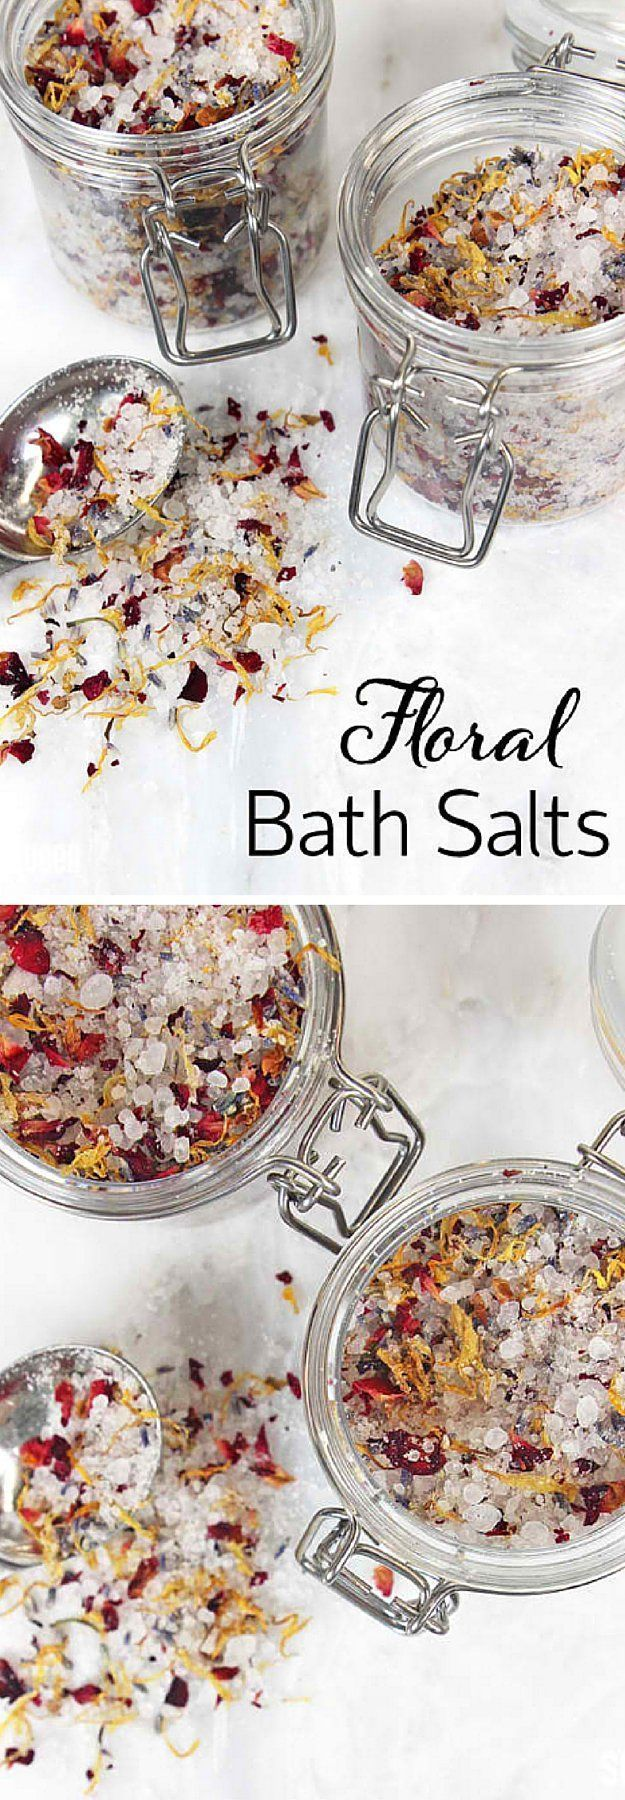 Floral Bath Salts | 17 DIY Bath Salts | Learn How To Make The Most Relaxing Bath Salt Recipes by DIY Ready at http://diyready.com/17-diy-bath-salts-bath-salt-recipe/